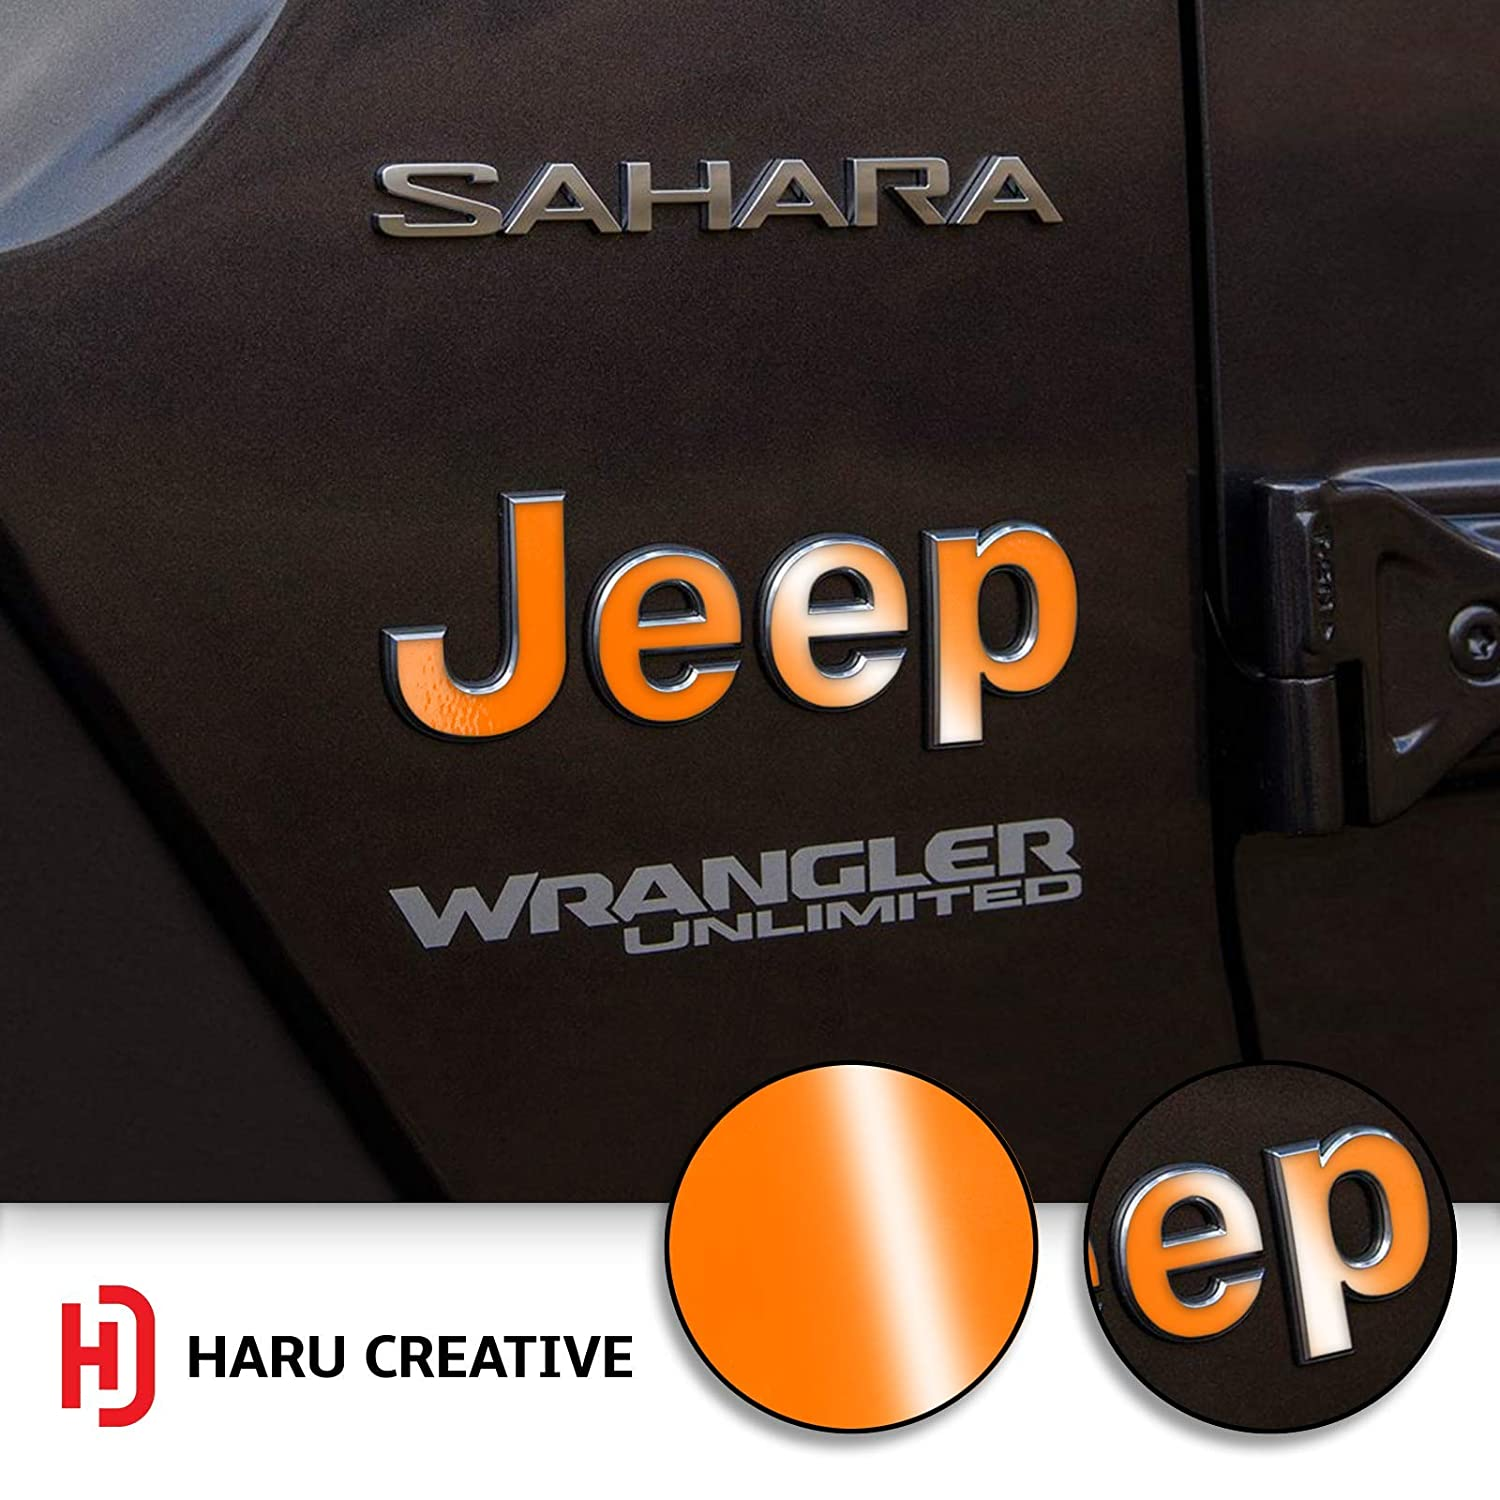 Fender Side Door Emblem Letter Overlay Vinyl Decal Sticker Compatible with and Fits Jeep Wrangler JL 2018 Haru Creative Gloss Blue